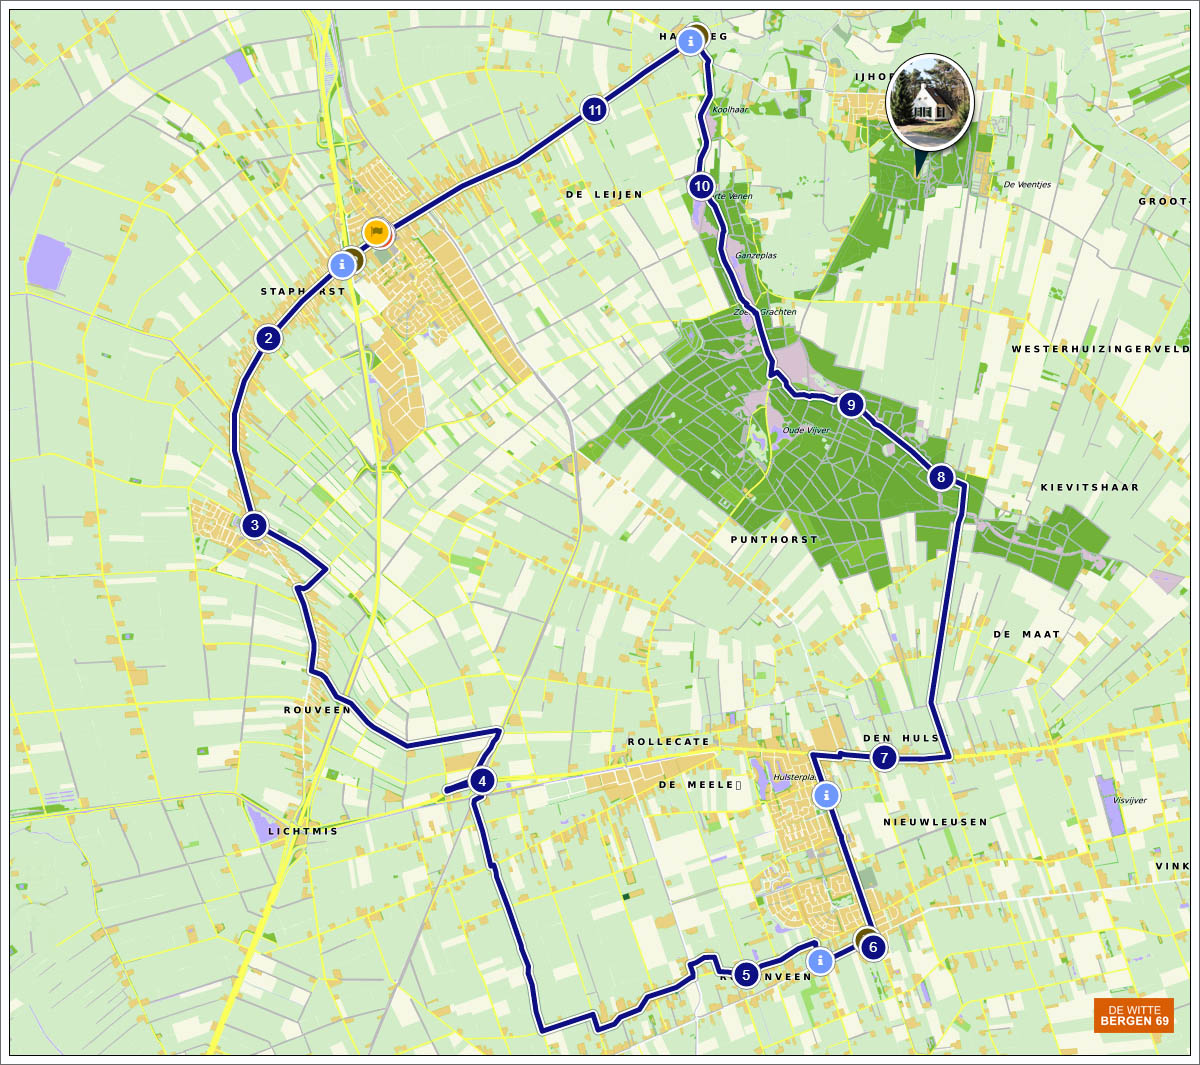 Discover Staphorst and surroundings, 37 km